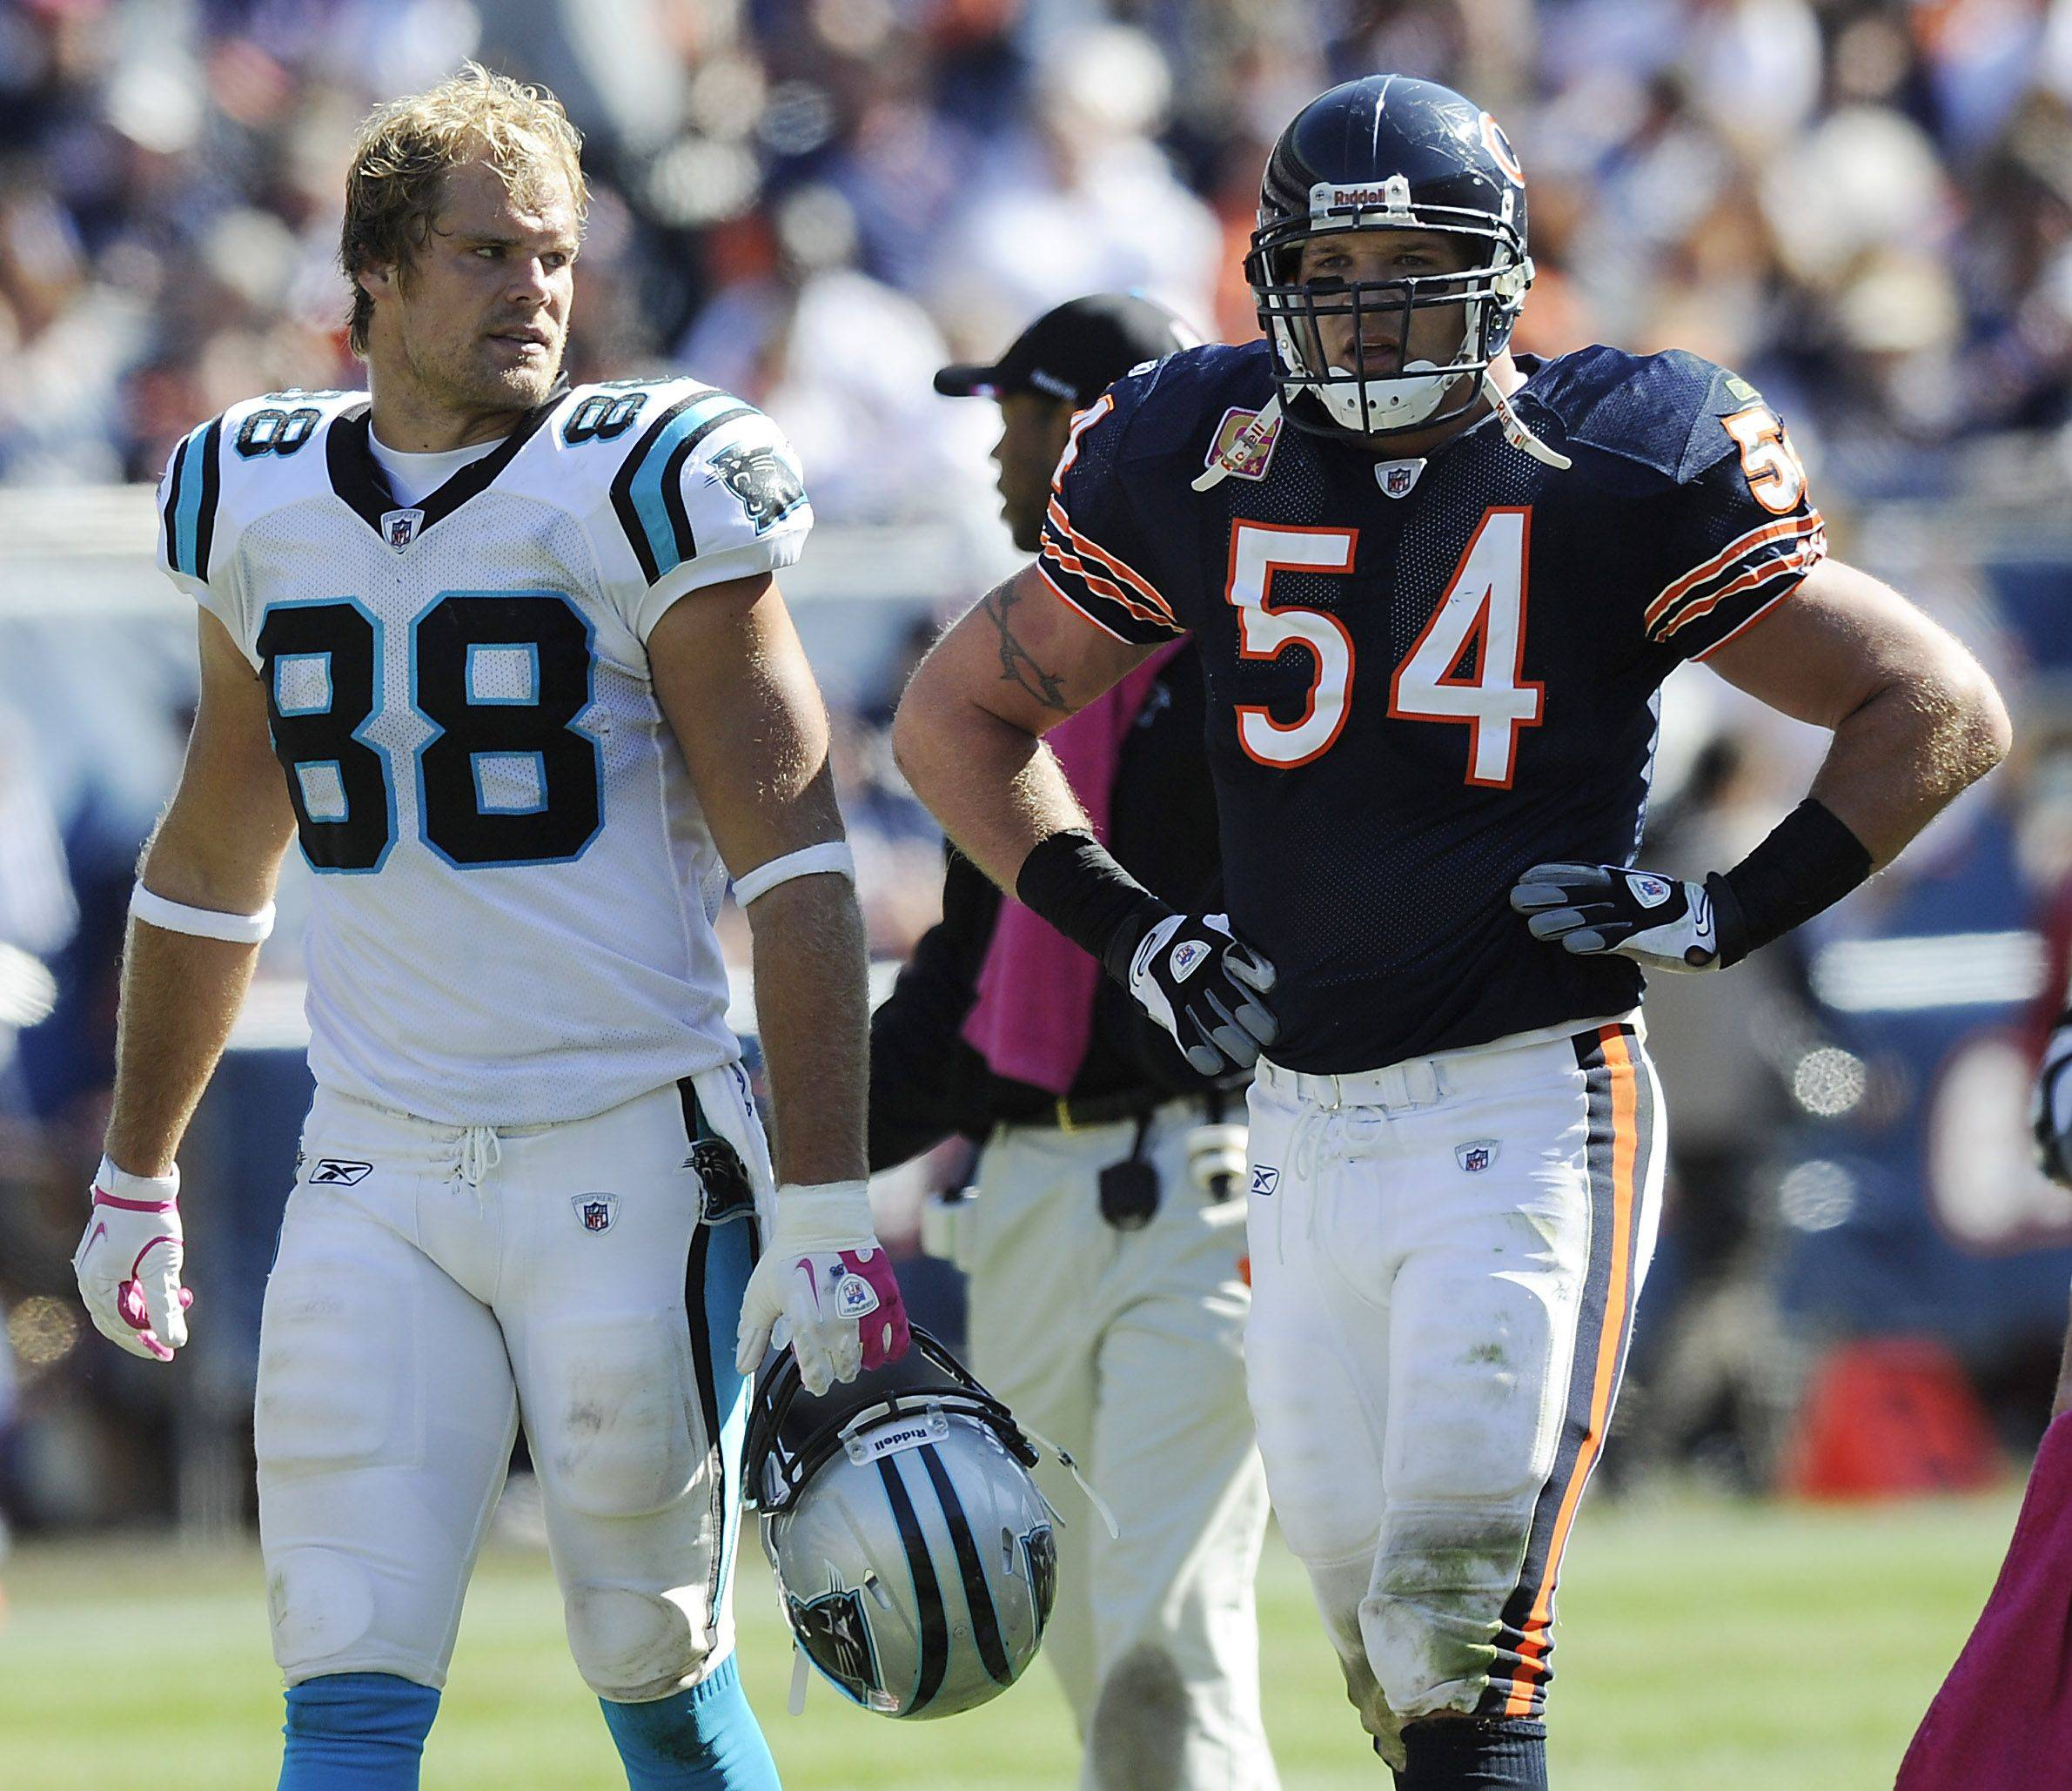 Panthers Greg Olsen and Bears Brian Urlacher walk together as the 4th quarter begins.